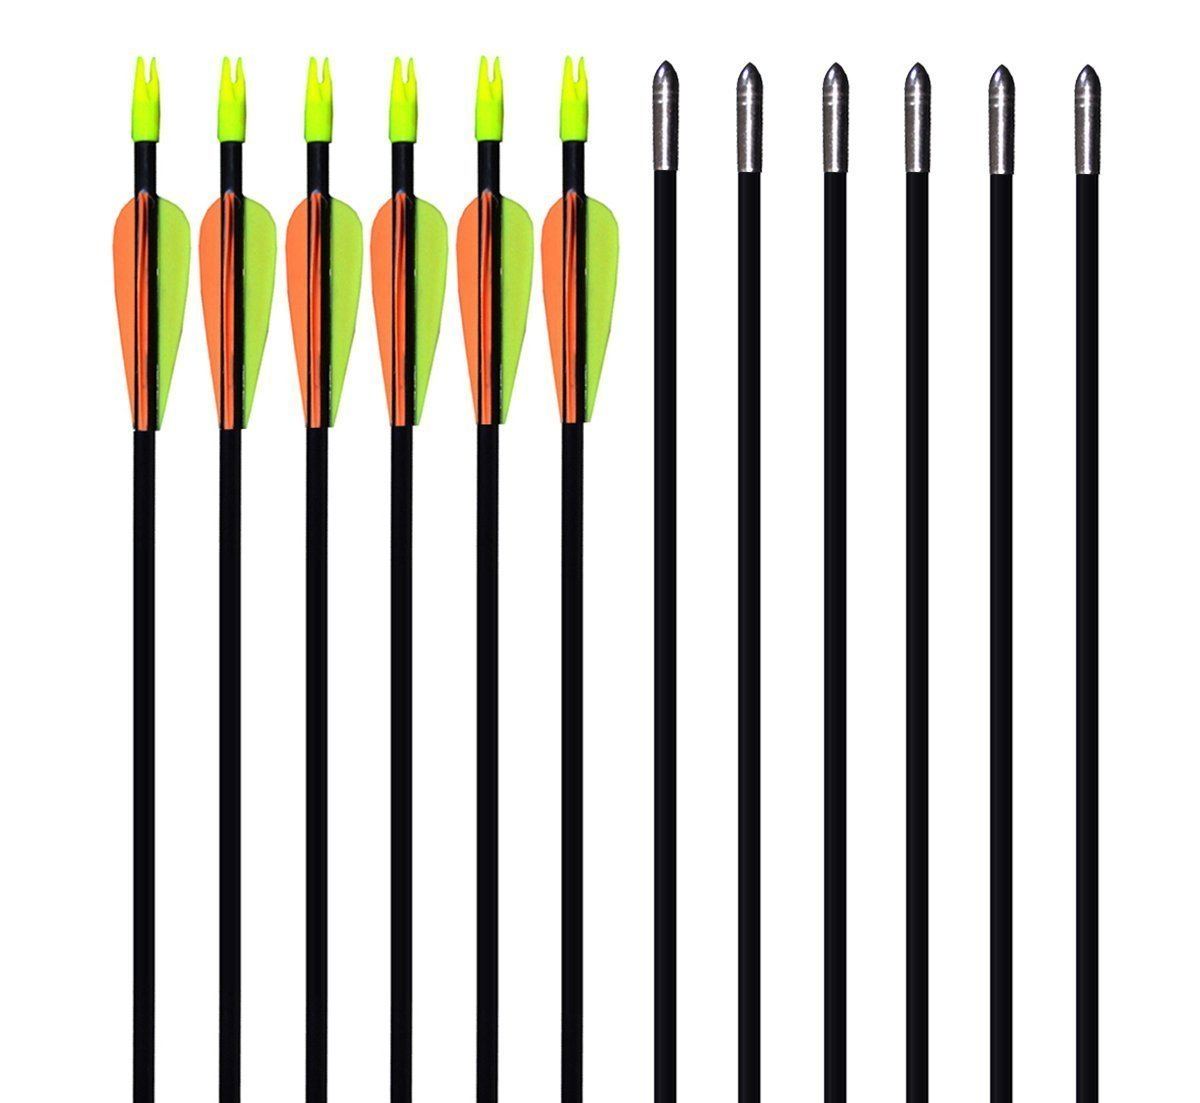 GPP 28'' Fiberglass Archery Target Arrows - Practice Arrows or Youth Arrows for Recurve Bow- 12 Pack by GPP